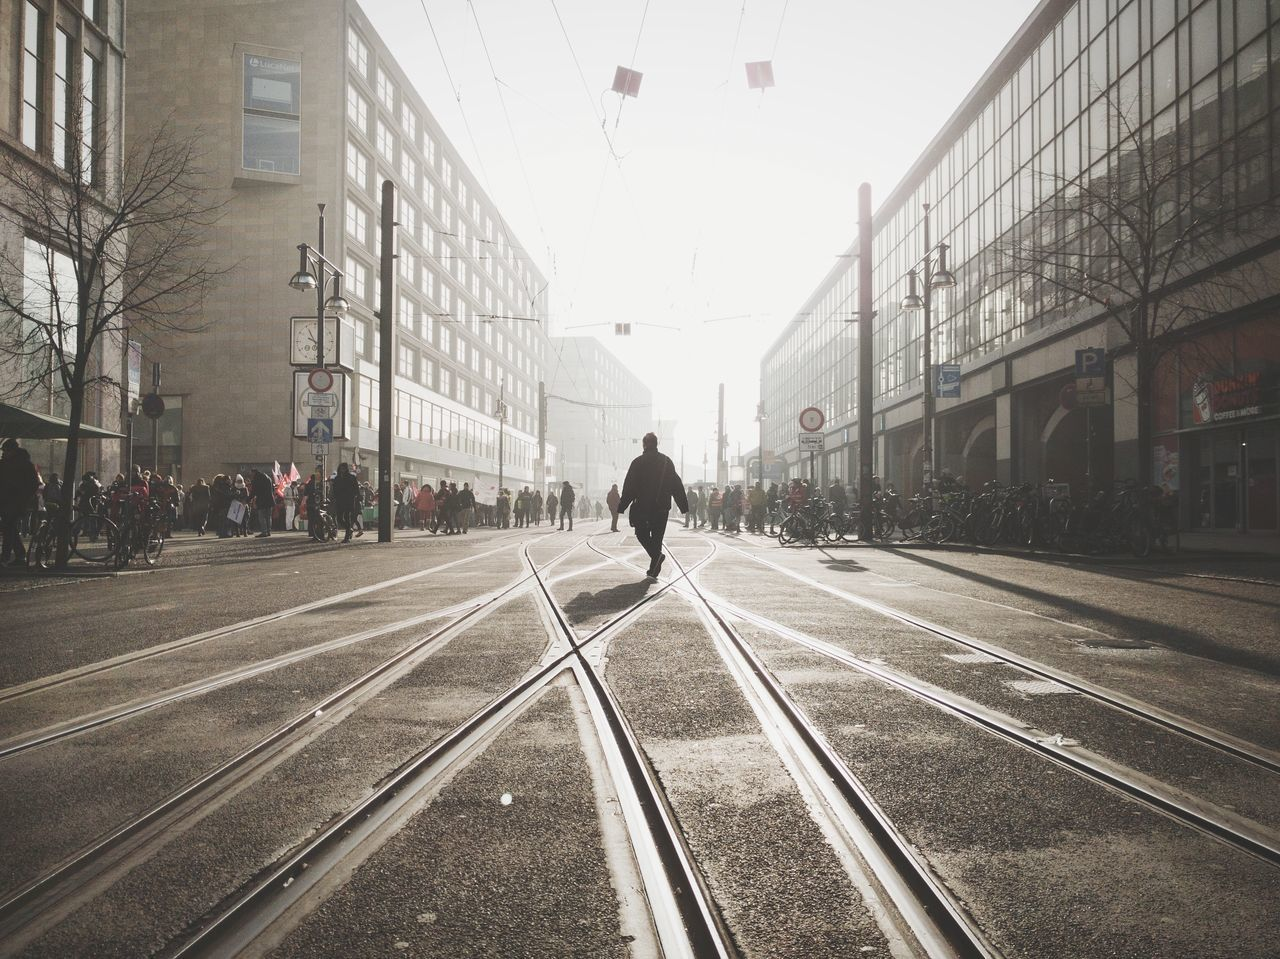 Transportation One Person Only Men City Adults Only Built Structure Full Length People Outdoors Sky Adult Real People Day Architecture One Man Only Light And Shadow Foggy Morning Misty The City Light Berliner Ansichten Fog City Life The Way Forward Street Walking